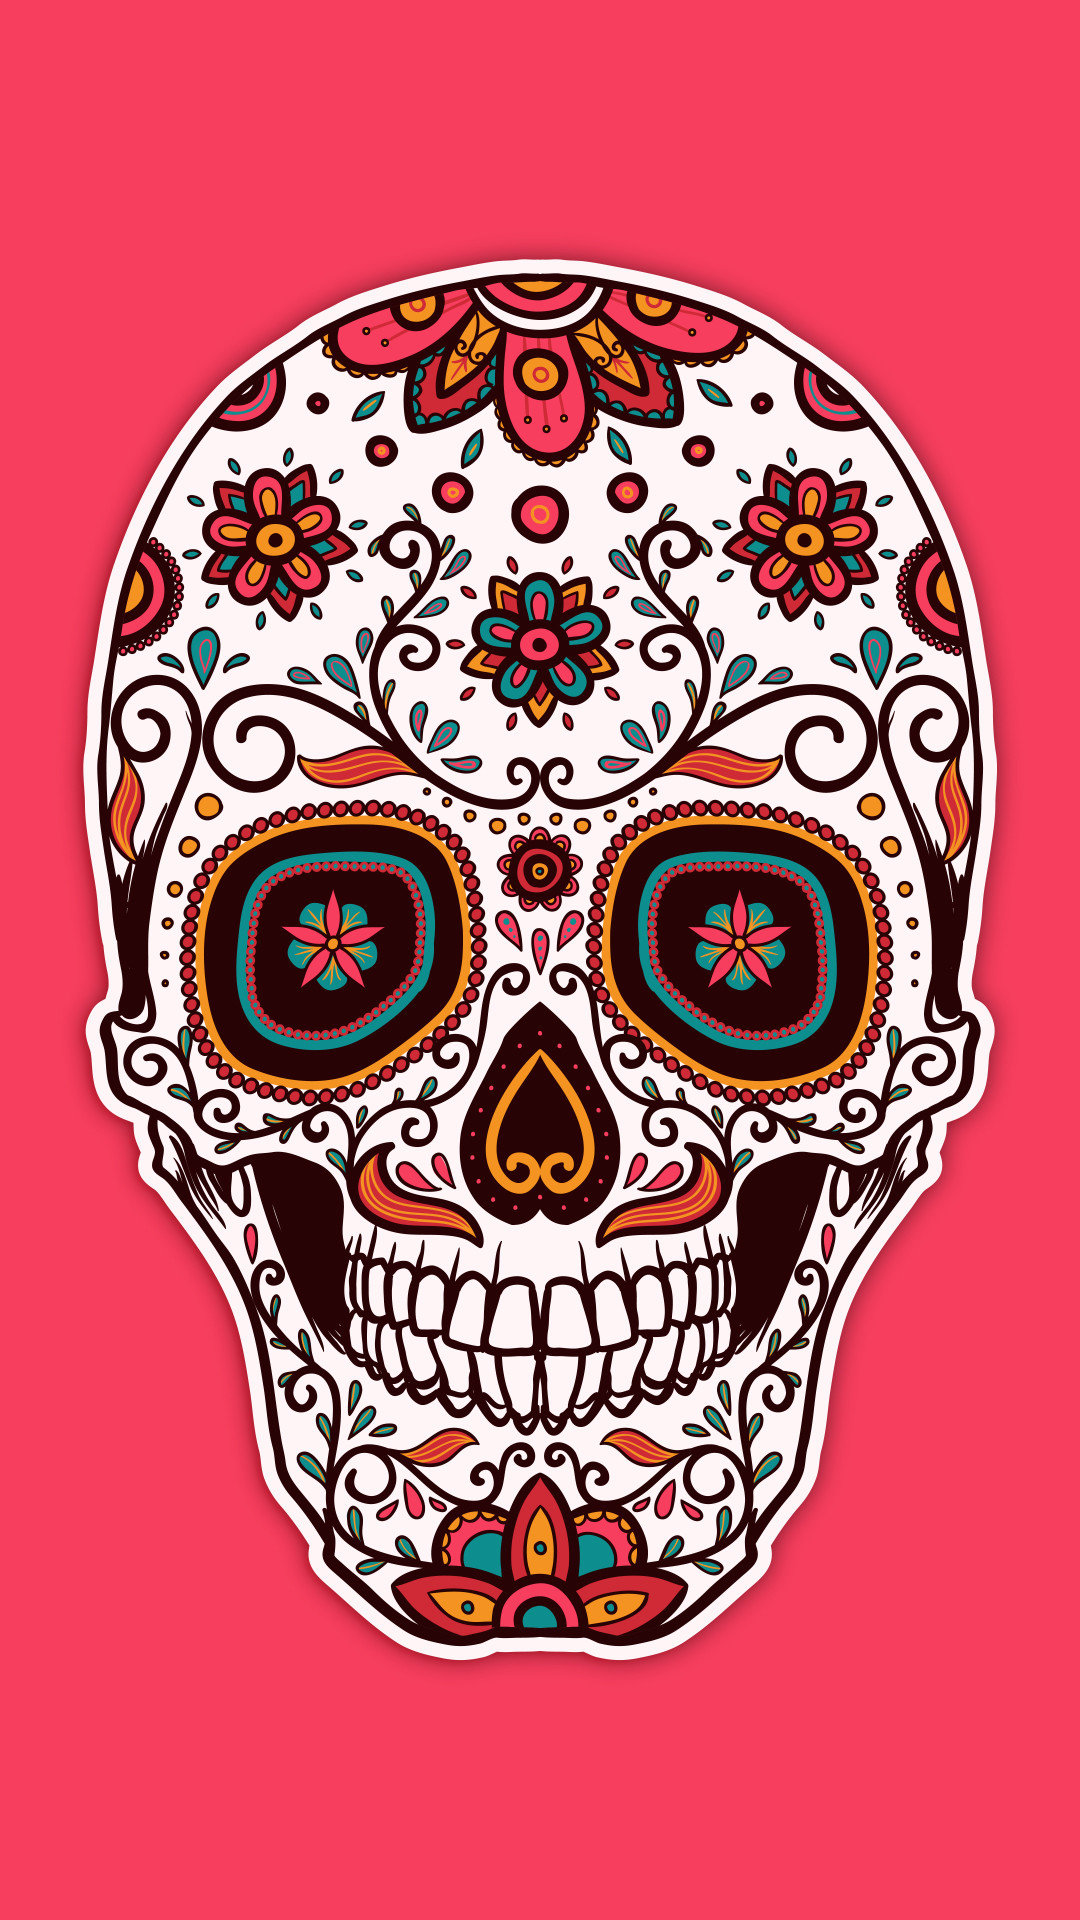 1080x1920 Artistic Sugar Skull Wallpaper 639965